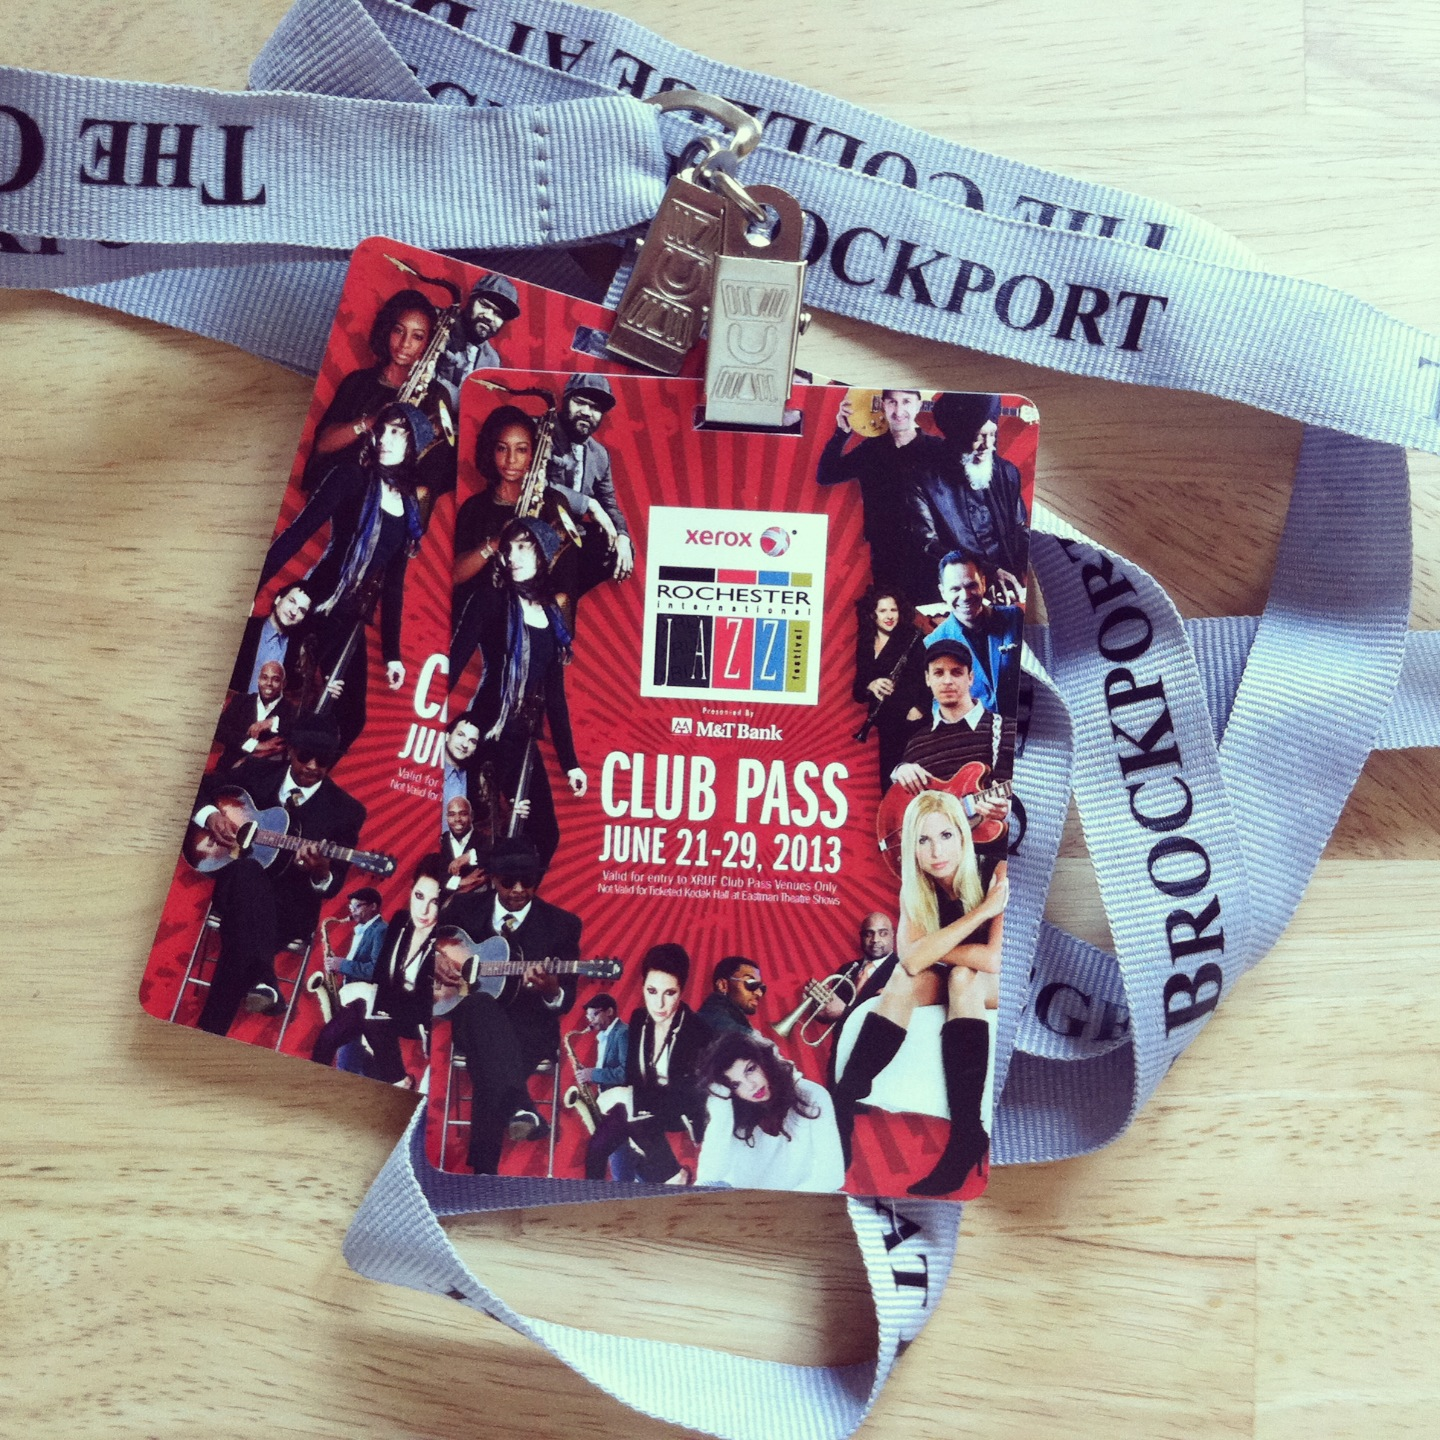 XRIJF club pass